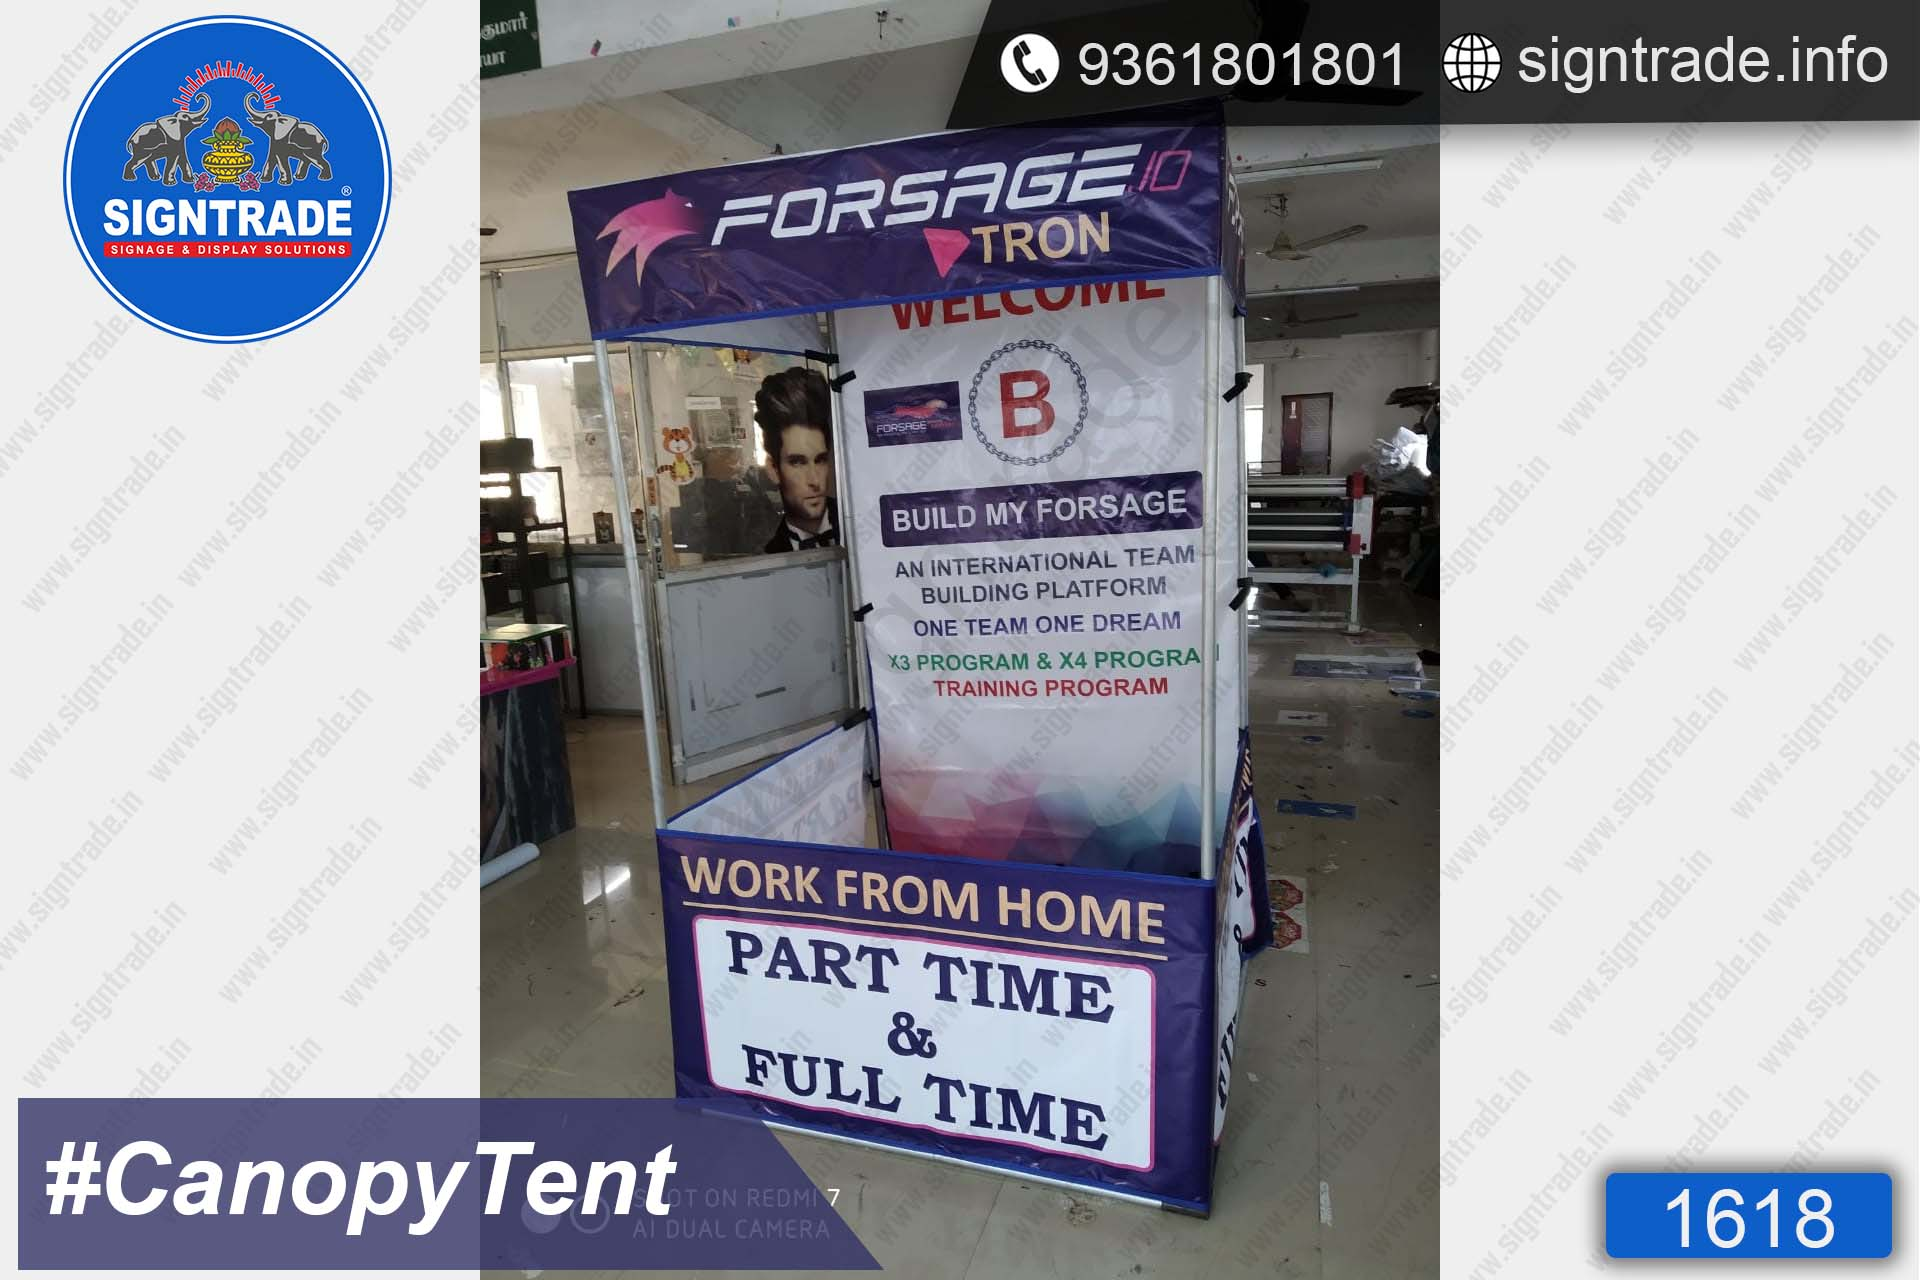 FORSAGE TRON - Flat Roof Tent - SIGNTRADE - Canopy Tent Manufactures in Chennai